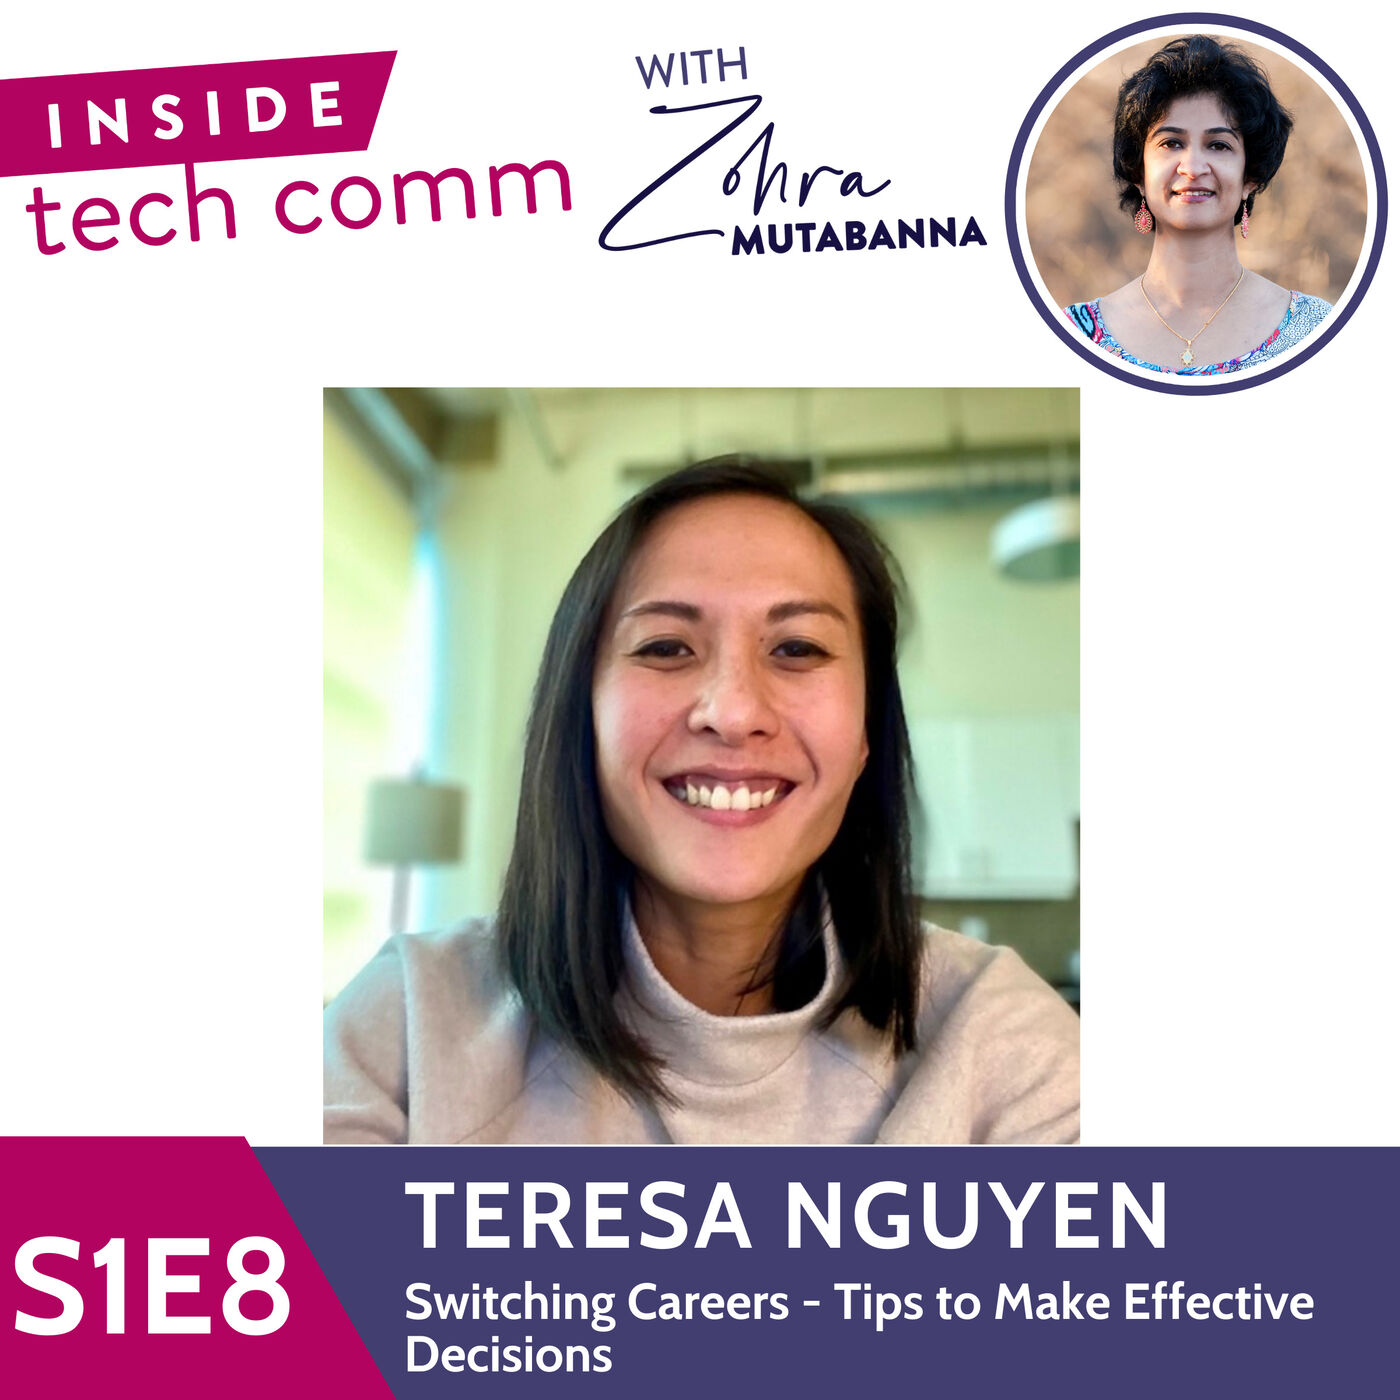 S1E8 Switching Careers - Tips to make effective decisions with Teresa Nguyen